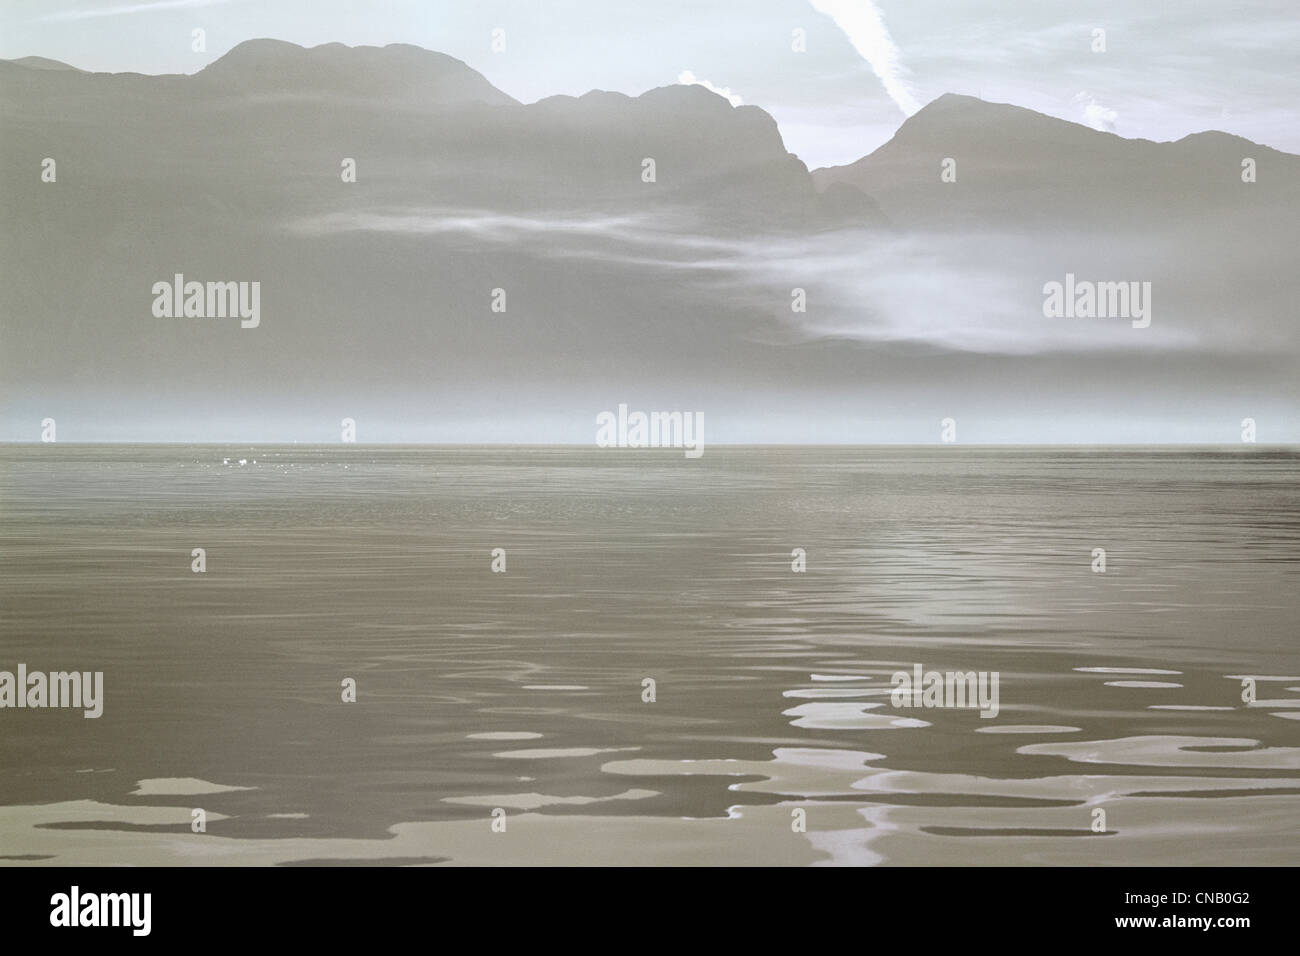 Still water on sandy beach - Stock Image